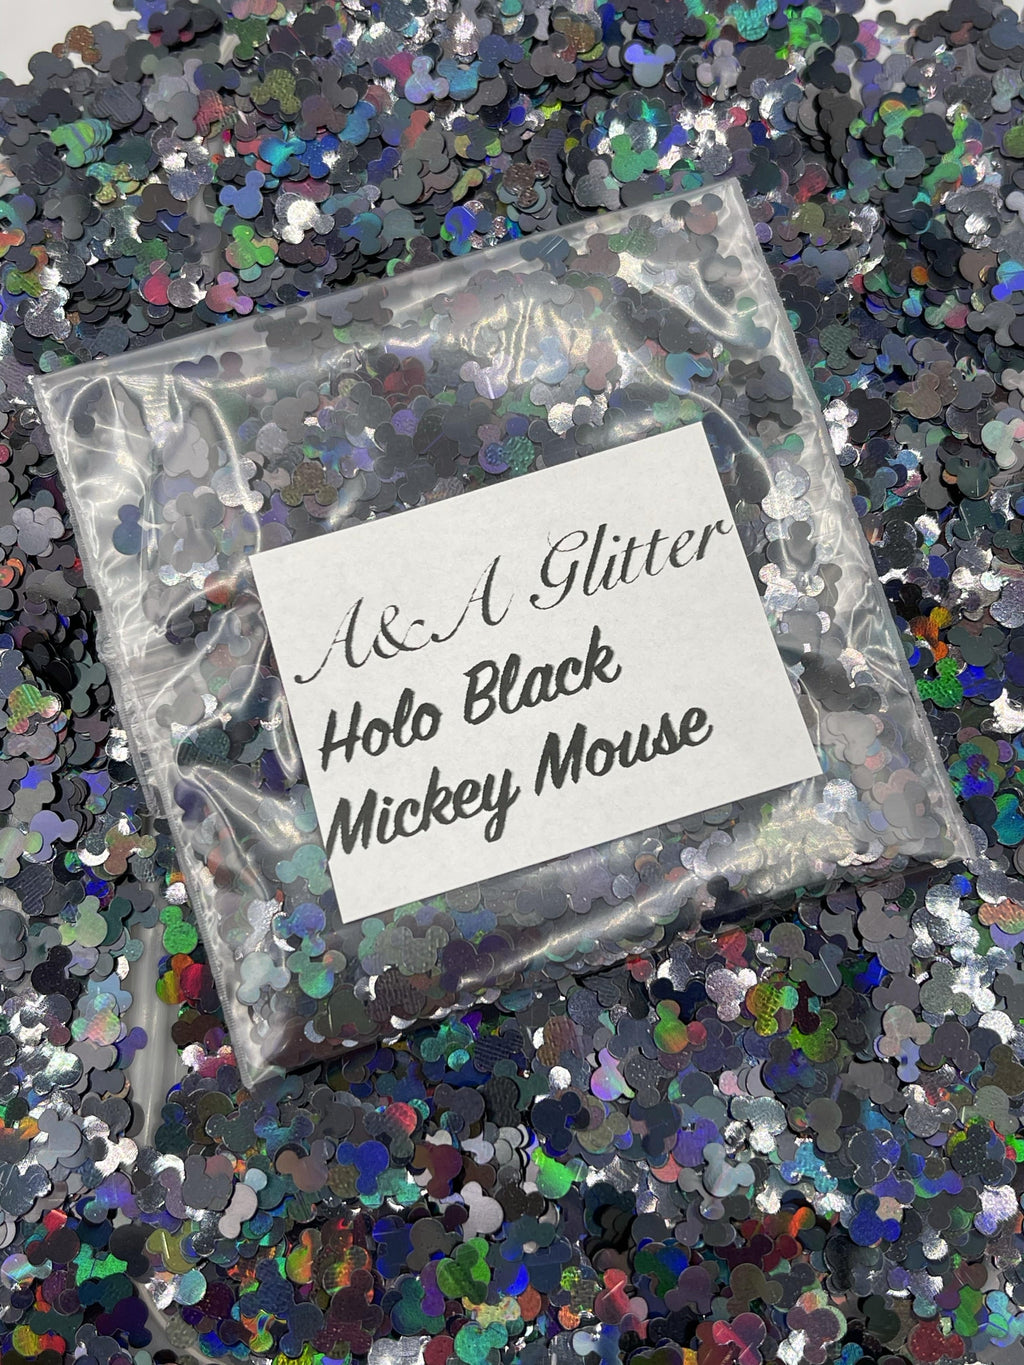 Holo Black - Mickey Mouse